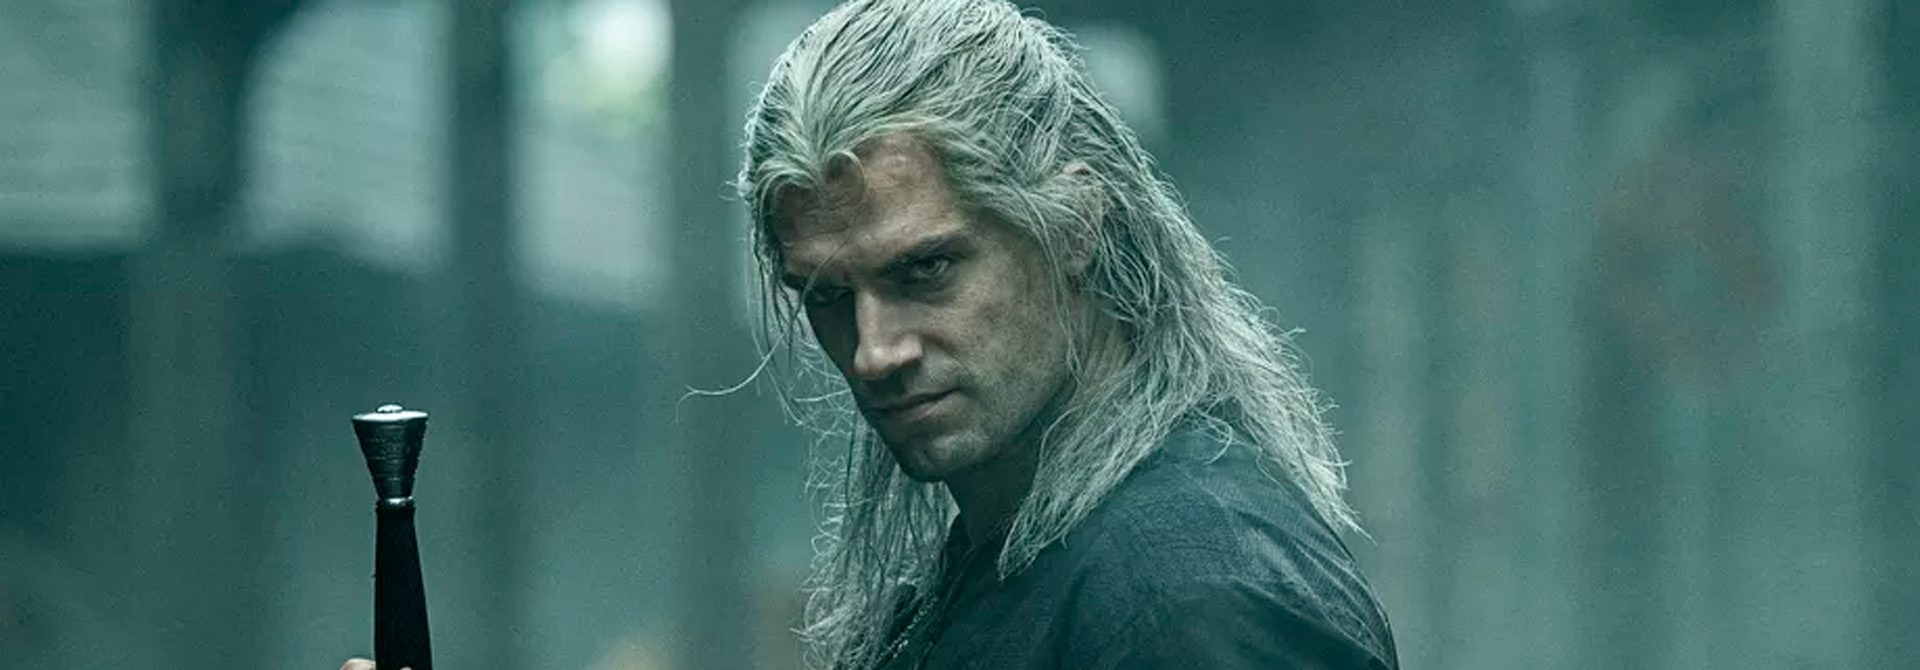 The Witcher Returns To Netflix Later This Year